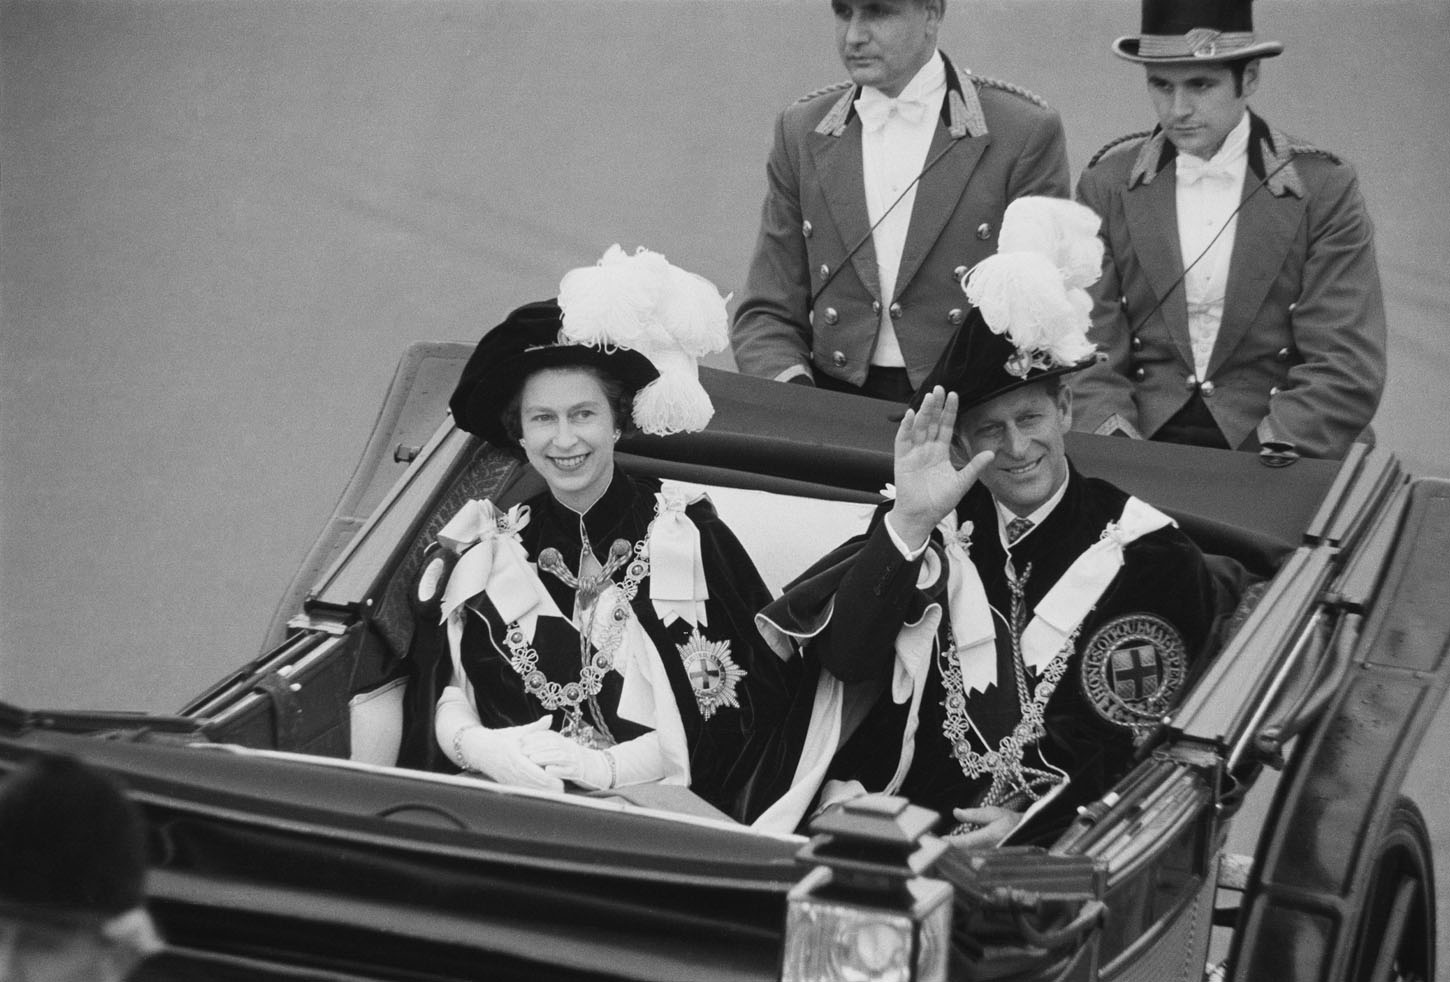 Prince Philip, Duke of Edinburgh and Queen Elizabeth II wave to crowds during the Garter Procession at Windsor Castle, 1969. (Photo by Victor Blackman/Daily Express/Hulton Archive/Getty Images)